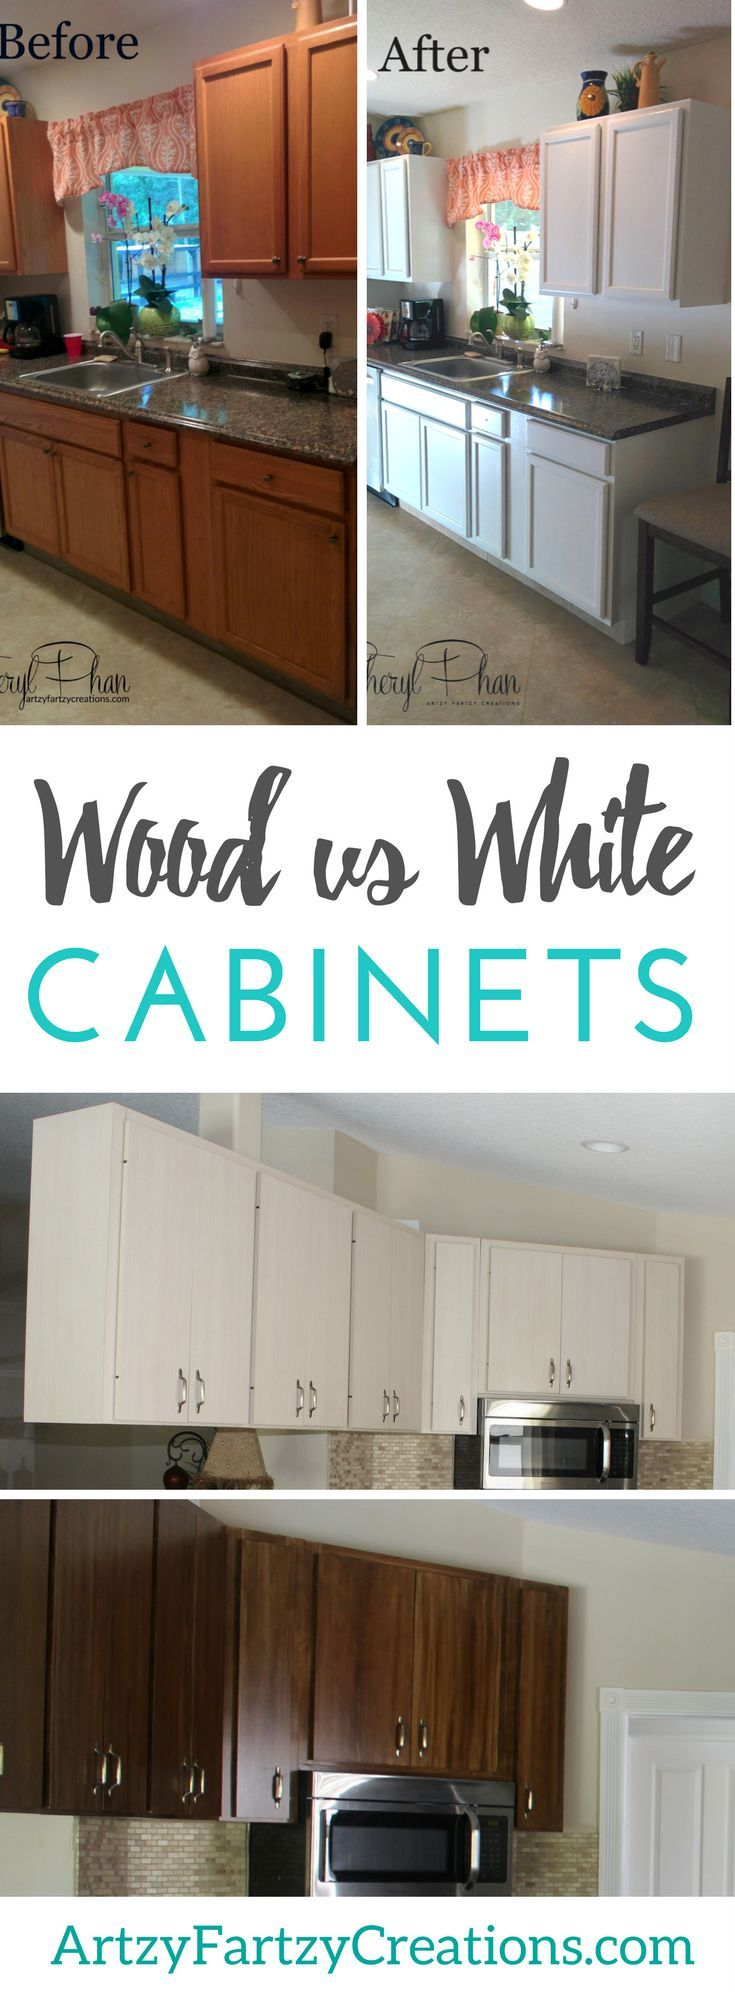 Wood Or White Cabinets In The Kitchen What S Your Preference Redo Kitchen Cabinets Stained Kitchen Cabinets Kitchen Redo